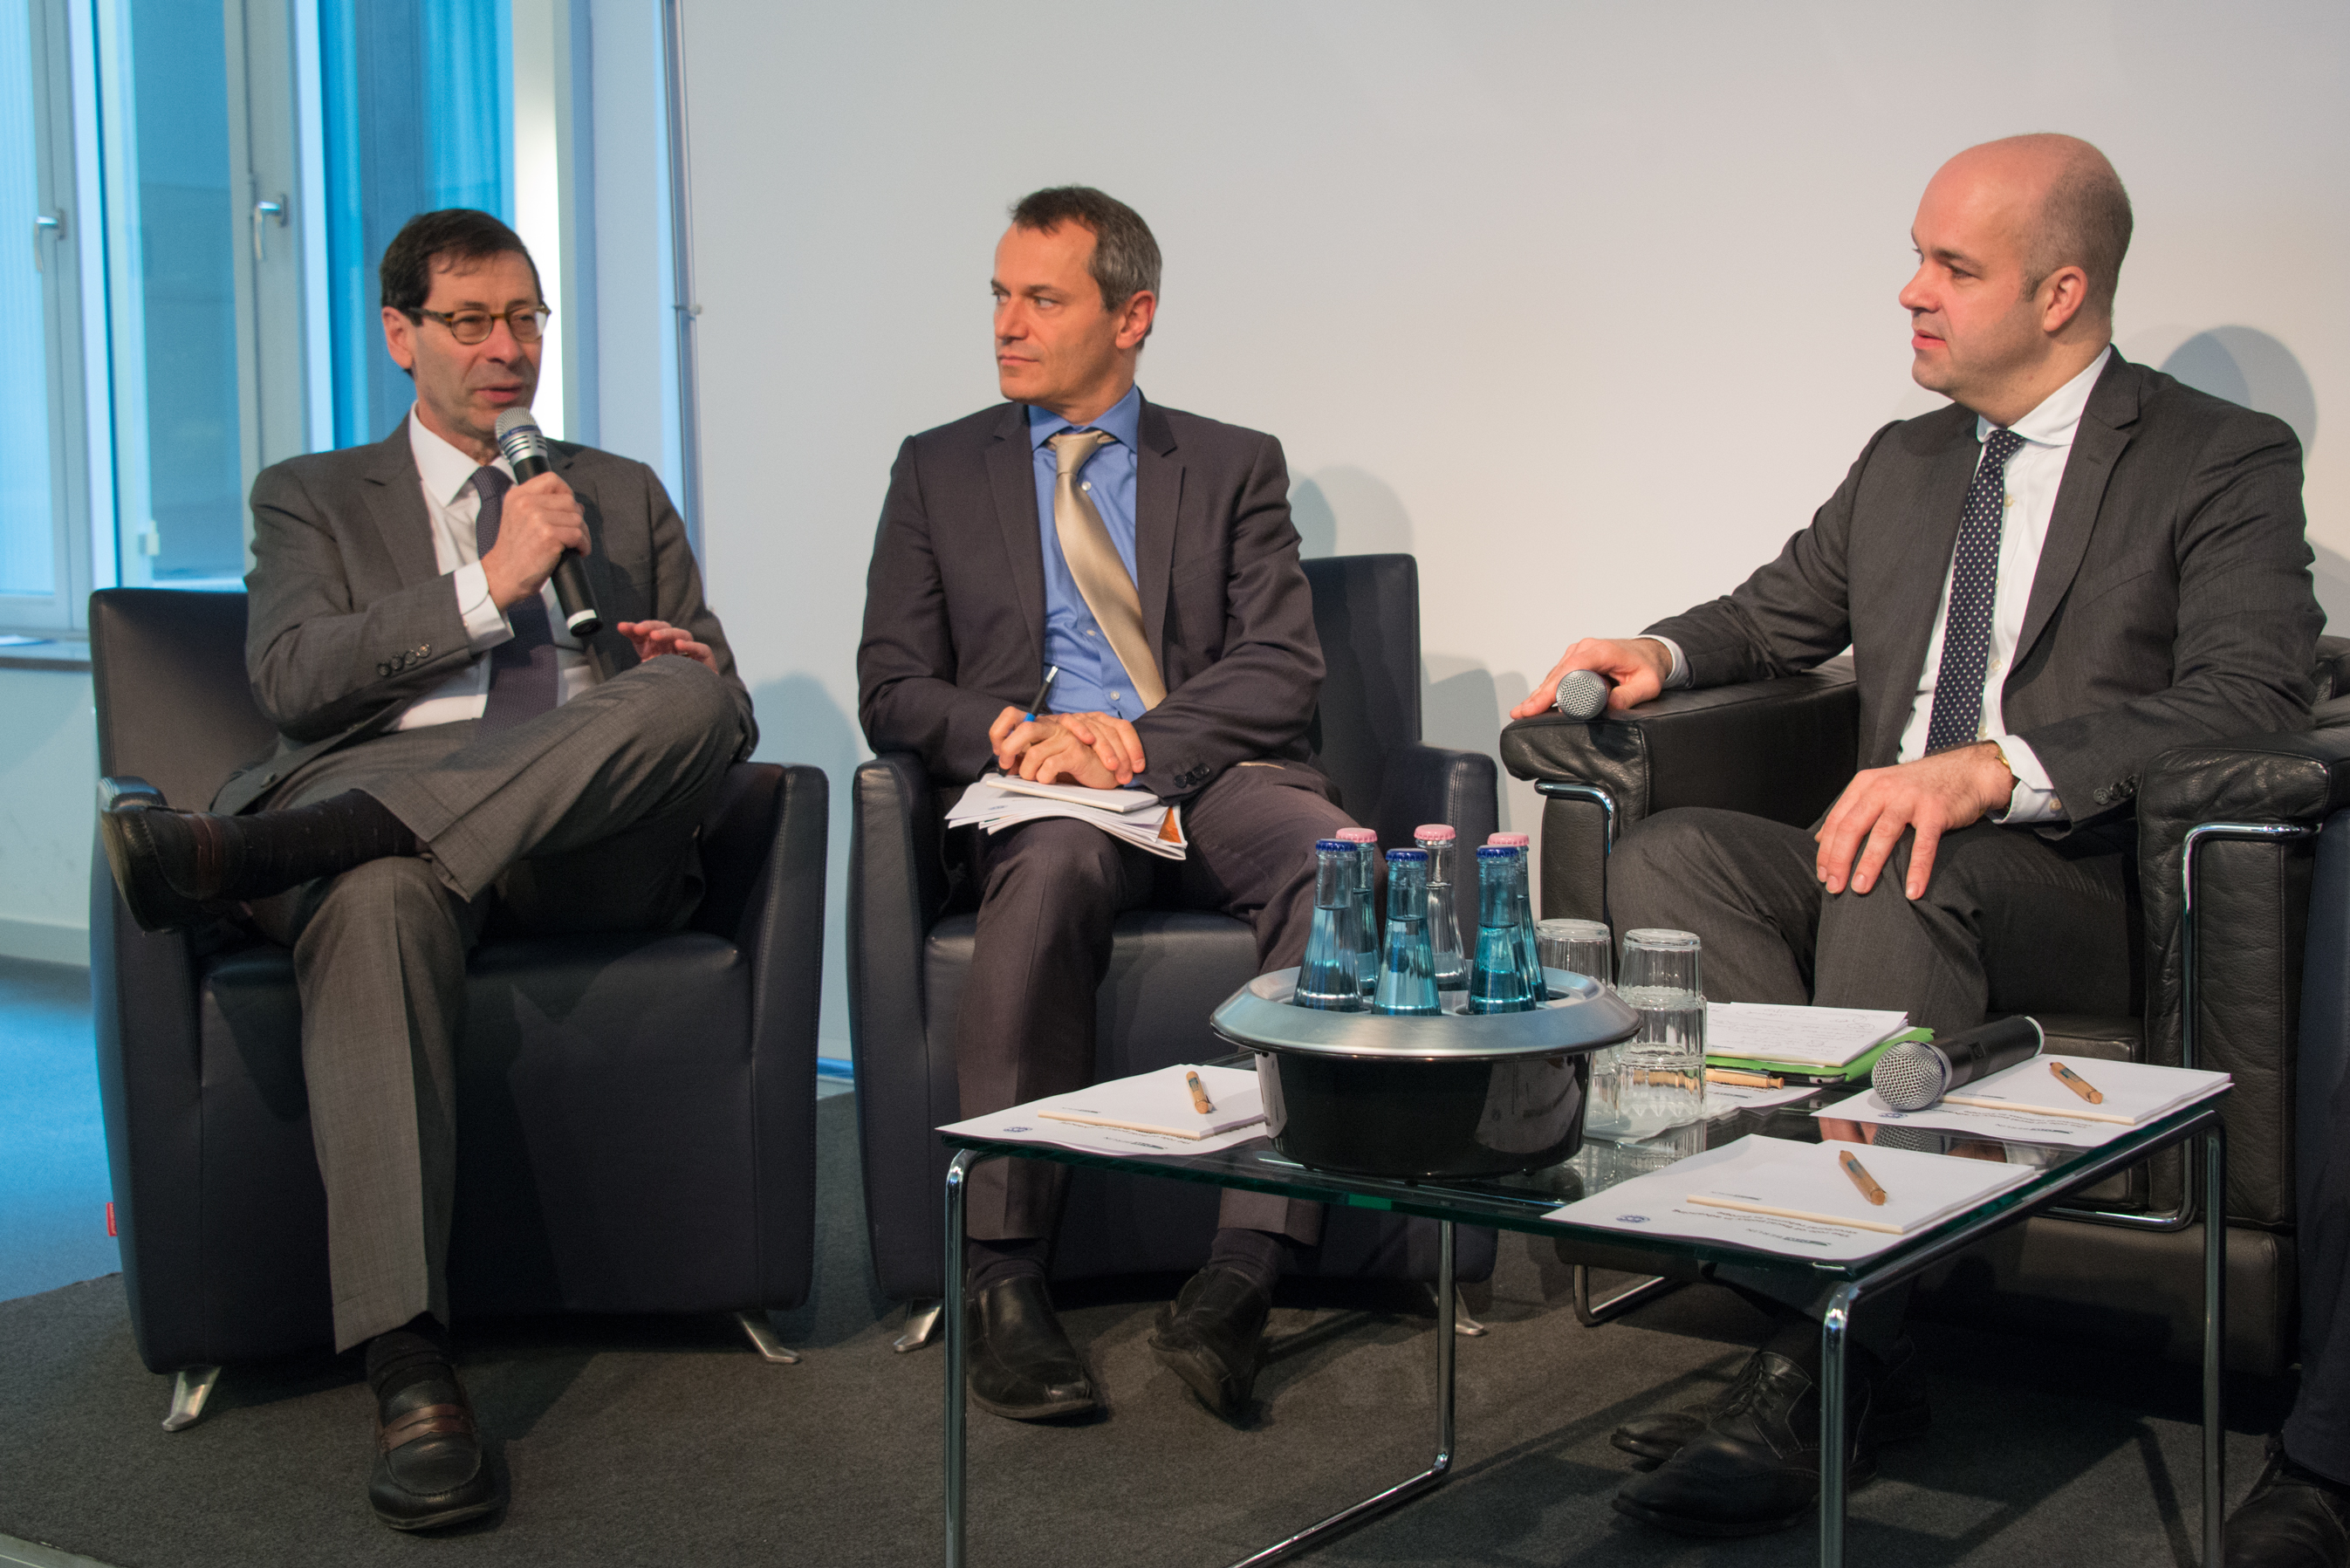 Maurice Obstfeld (IMF), Romain Duval (IMF) and Marcel Fratzscher attended a panel discussion (left to the rigth)